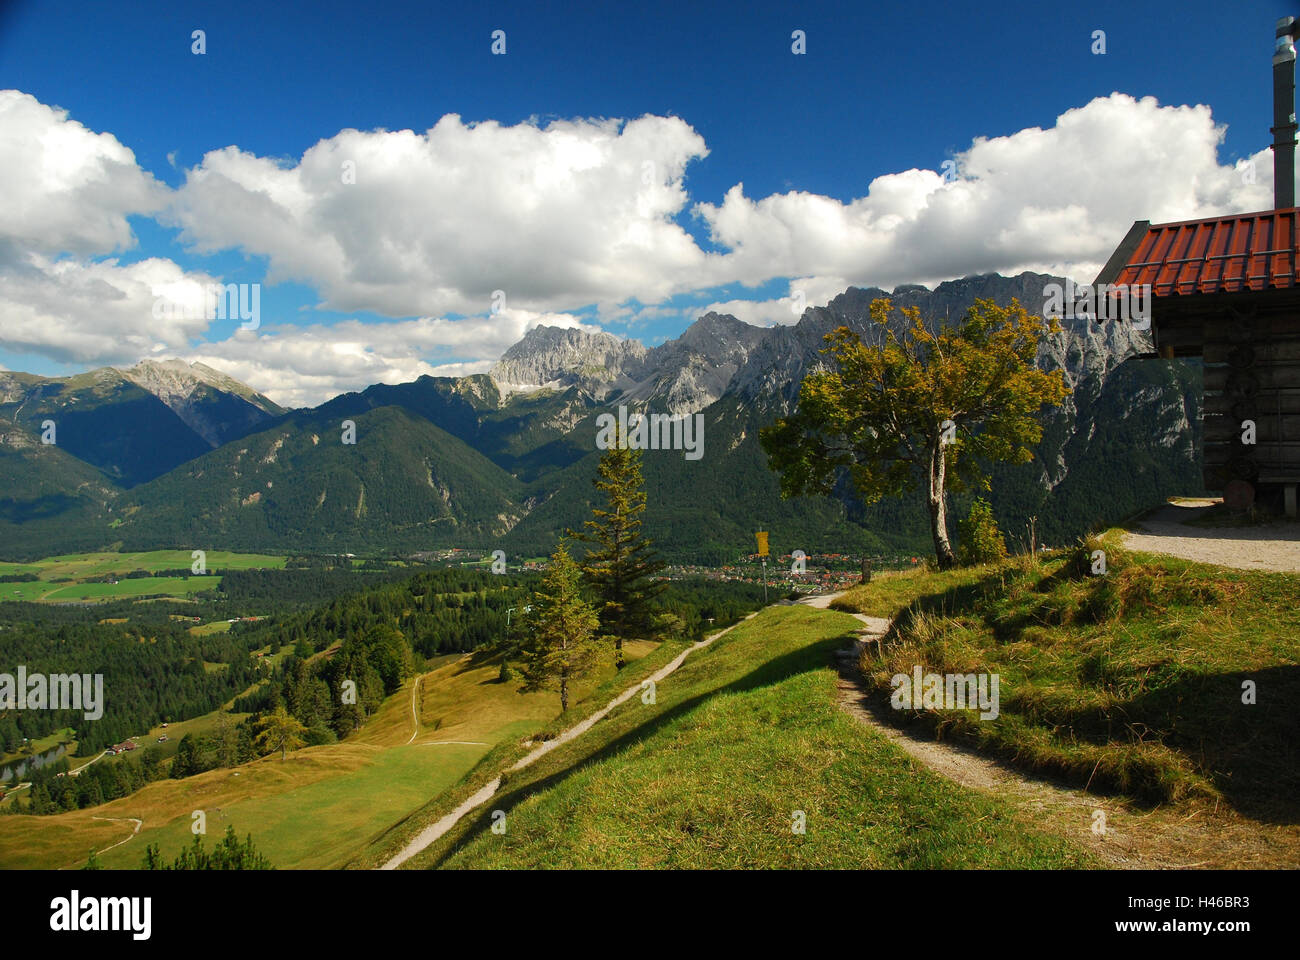 Germany, Bavaria, Mittenwald, Kranzberg, footpaths, - Stock Image